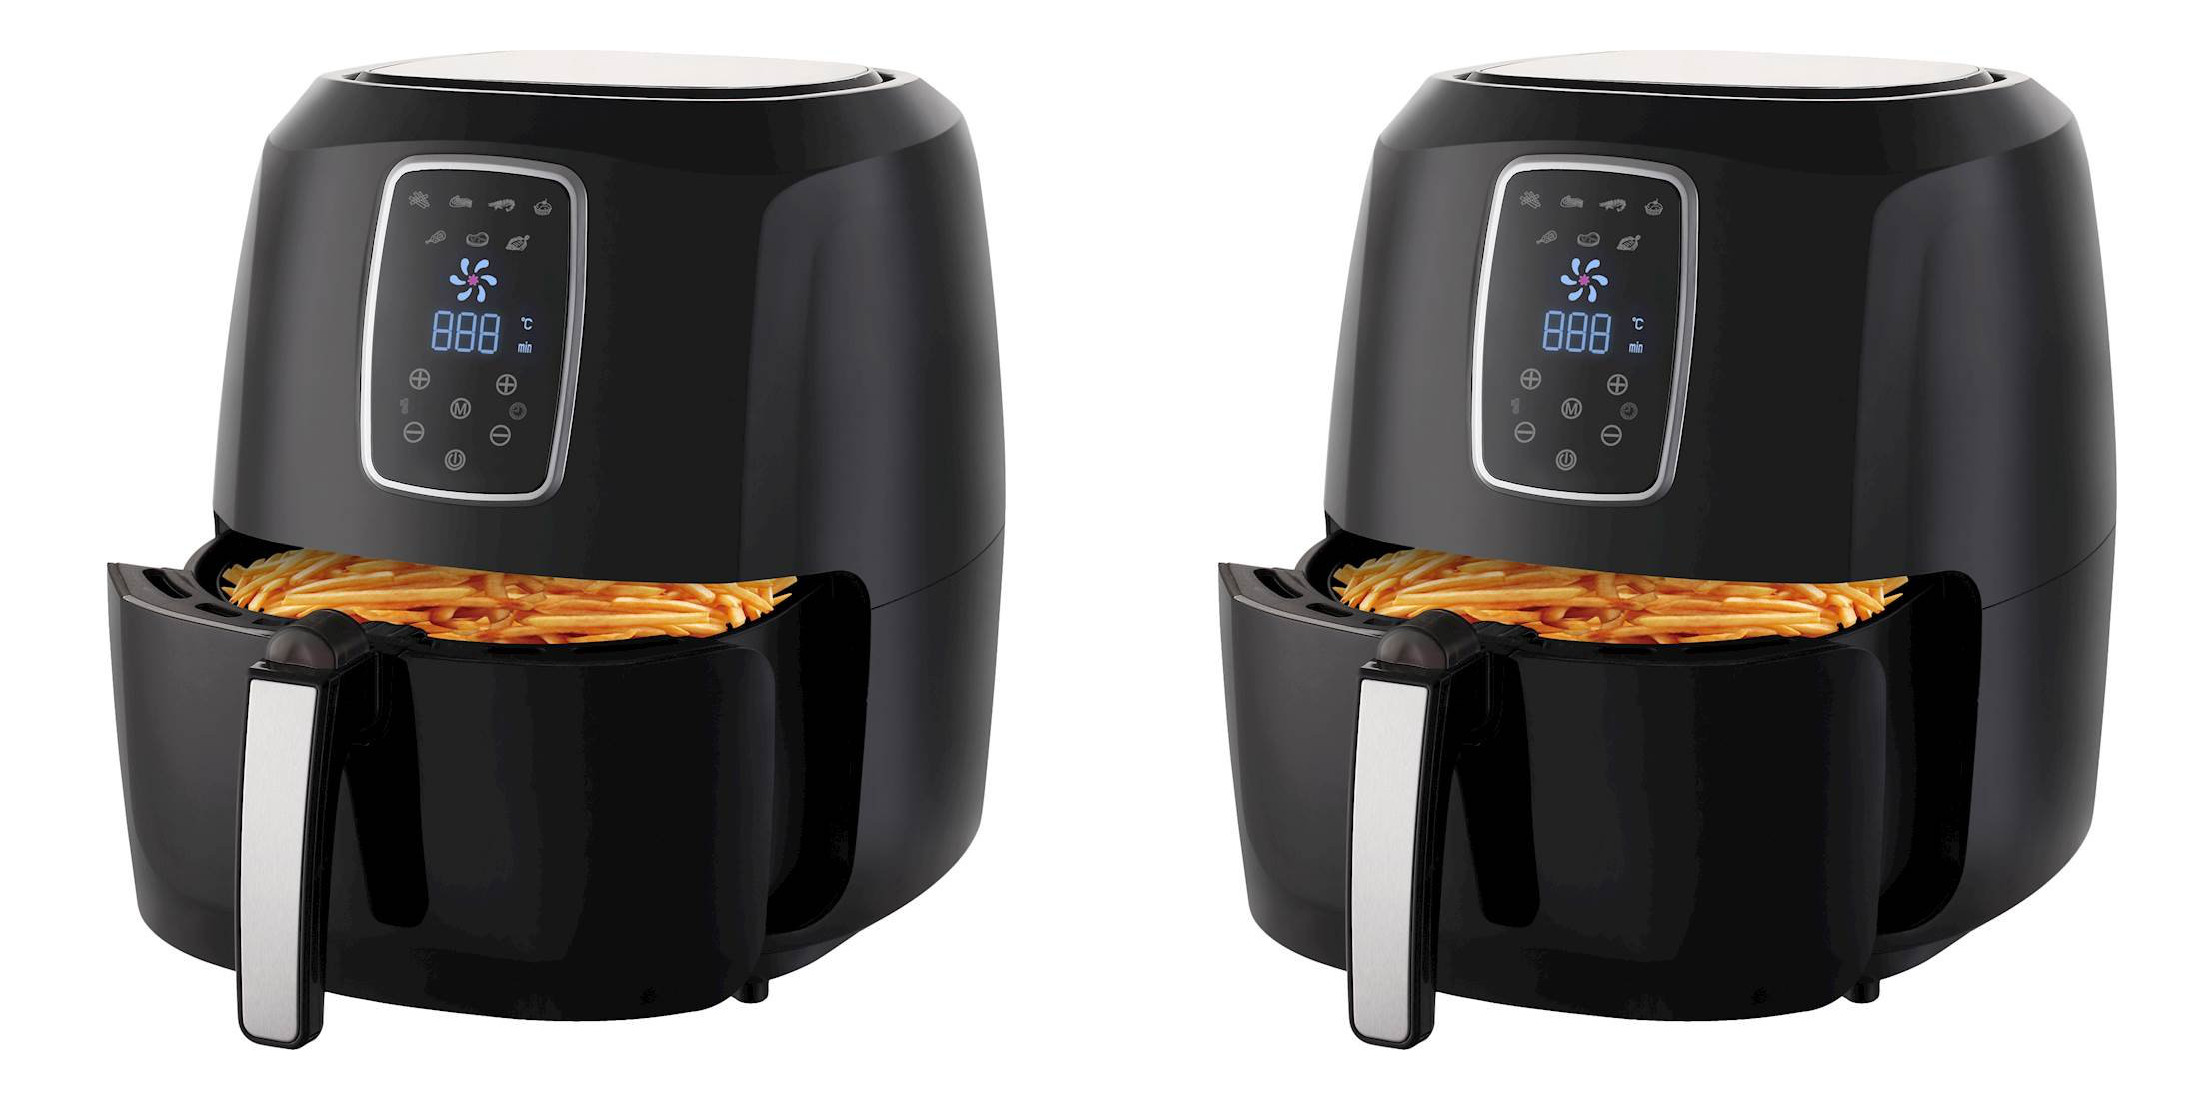 Here's 5.2 liters of highly-rated Air Fryer at just $55 shipped for today only (Reg. $73+)